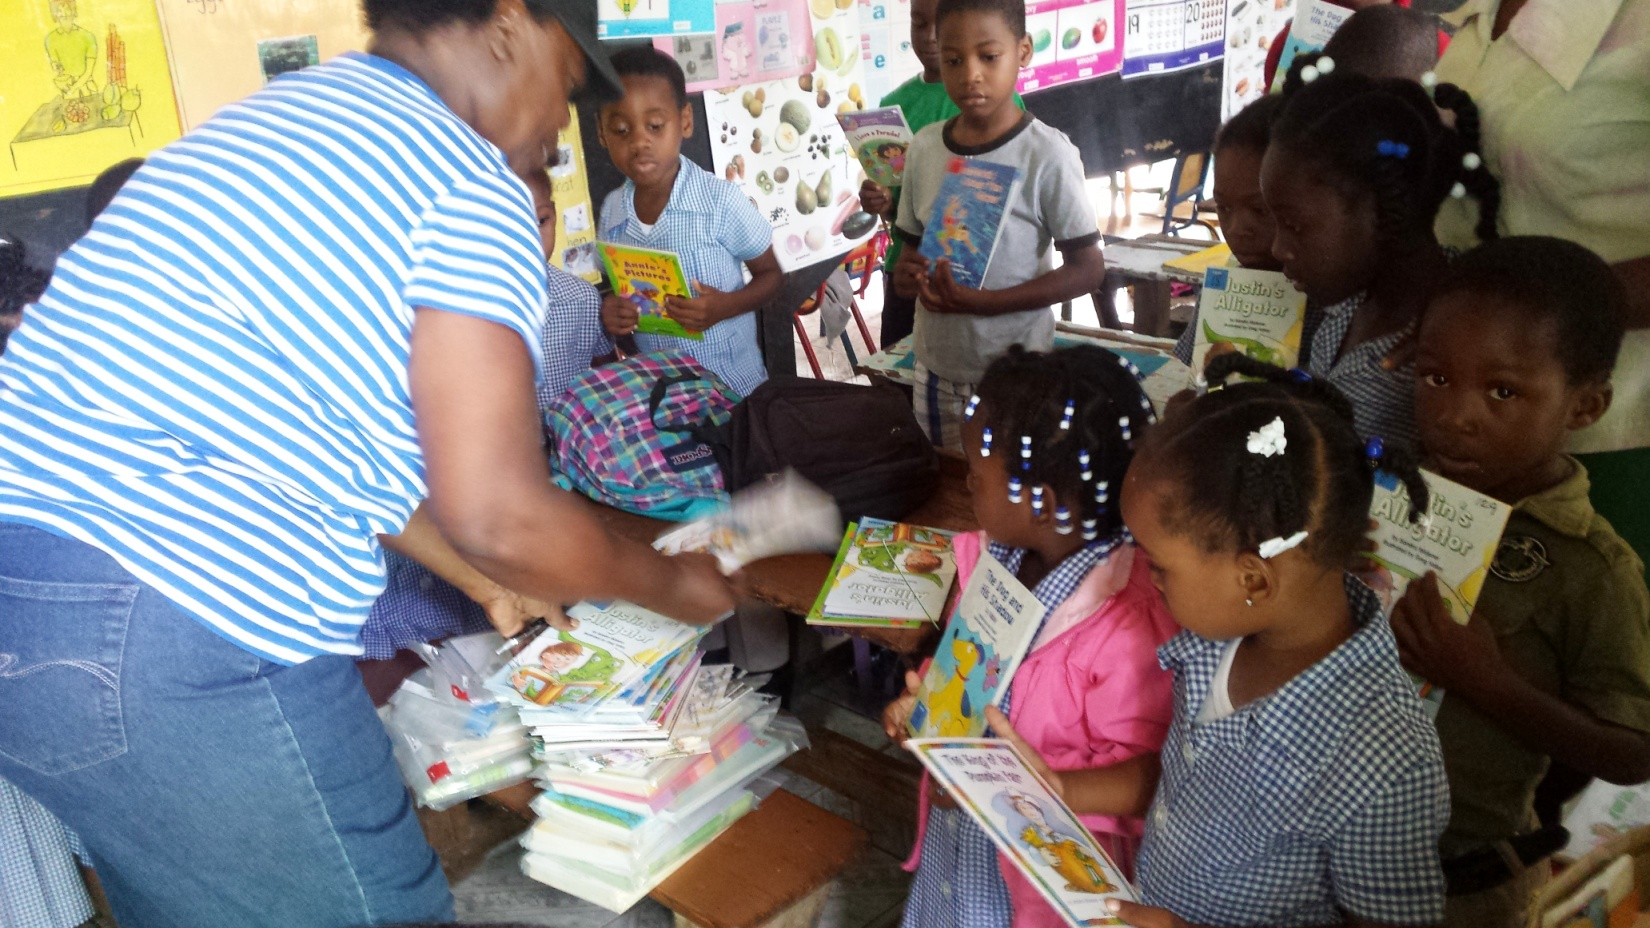 Children Checking Out Books (these Were Donated By Books4buddies) During